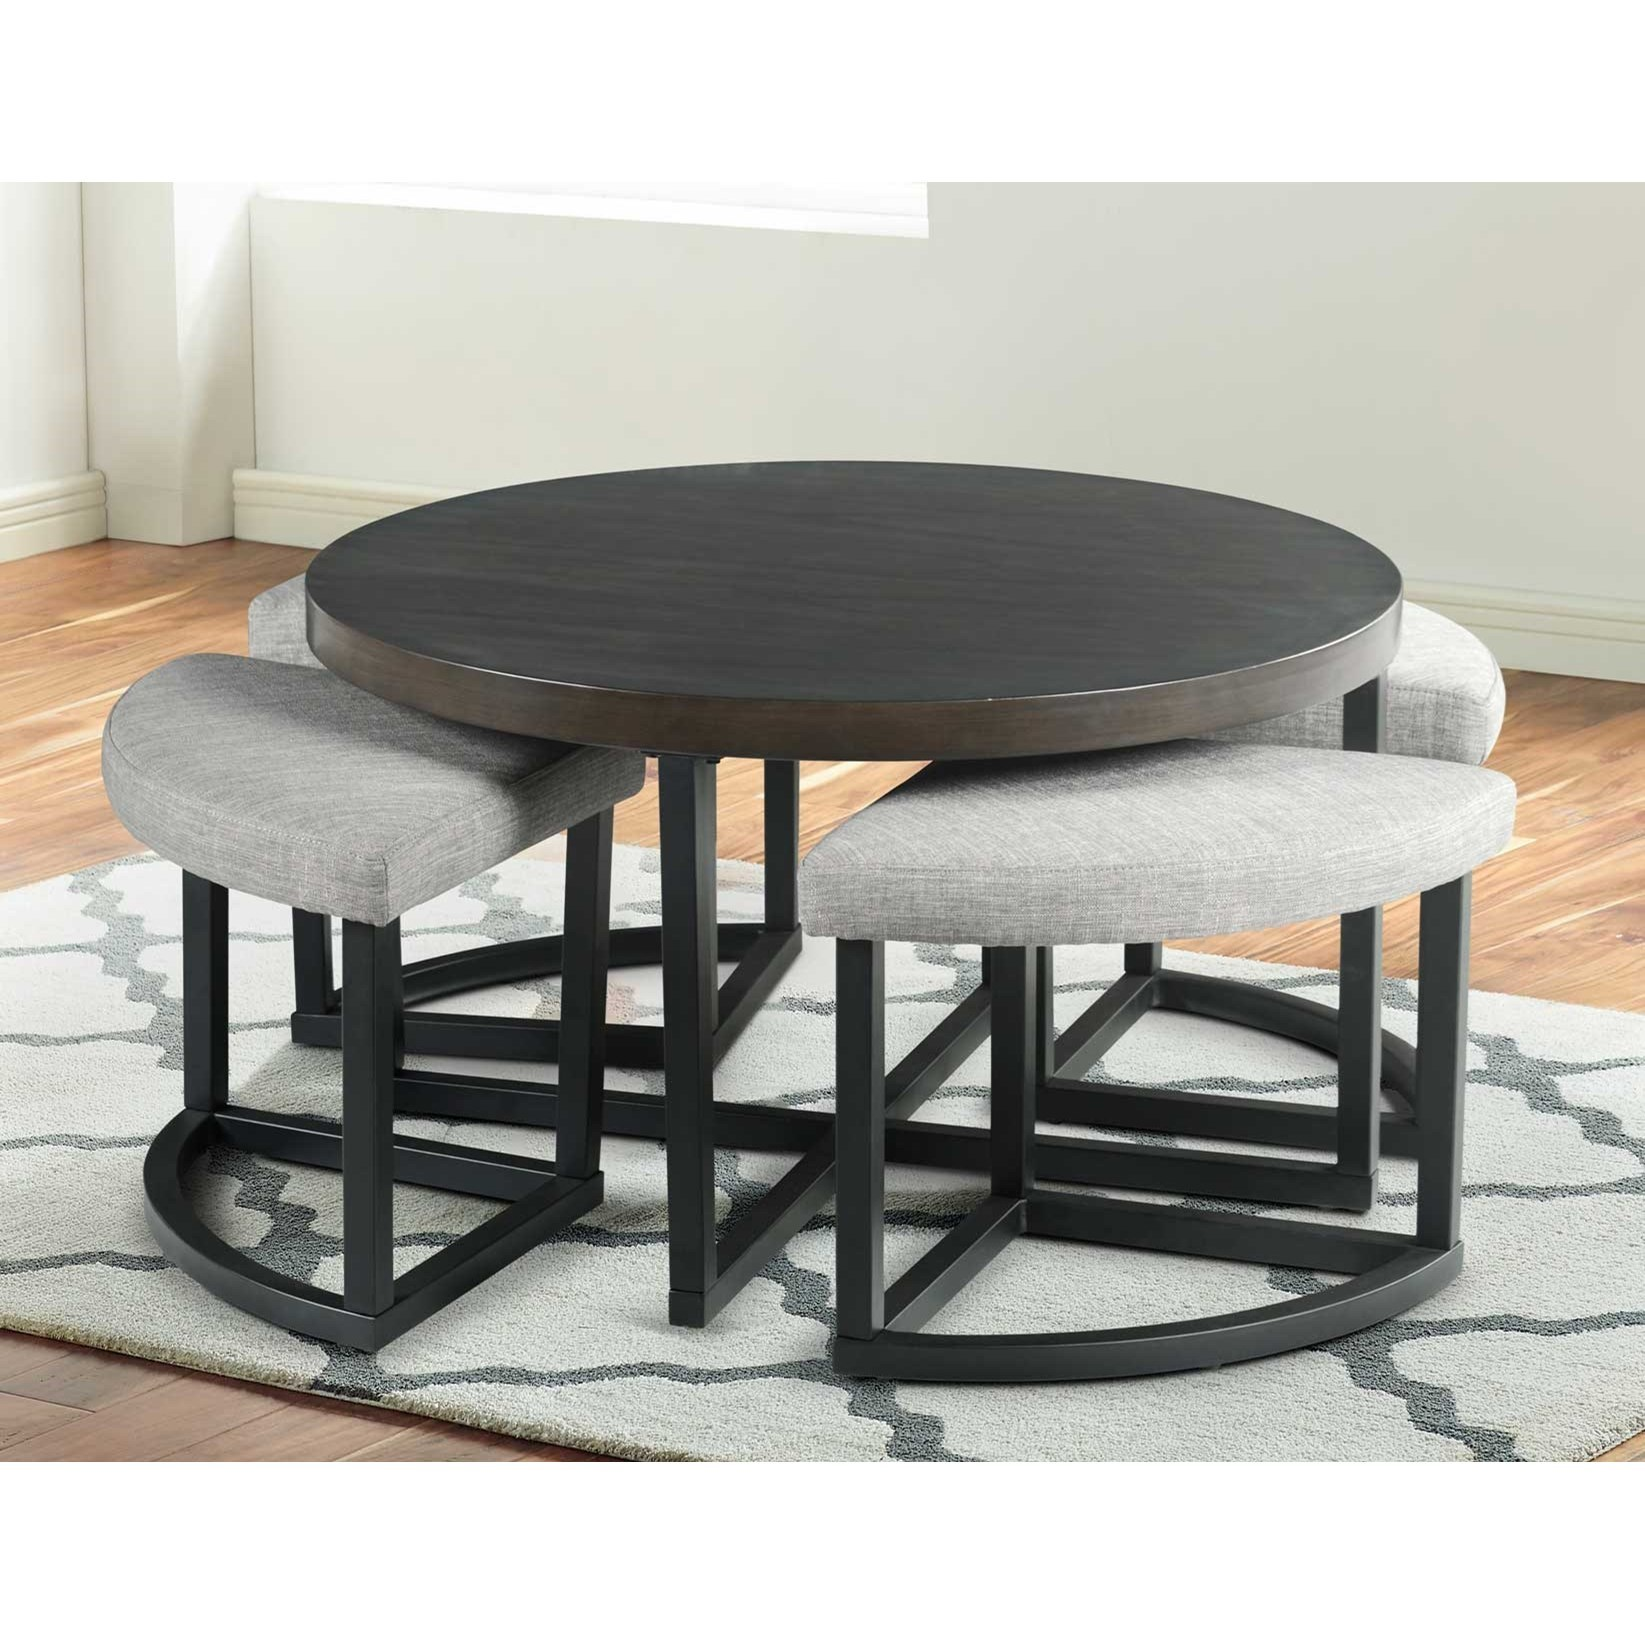 Yukon Coffee Table with Stools by Steve Silver at Walker's Furniture